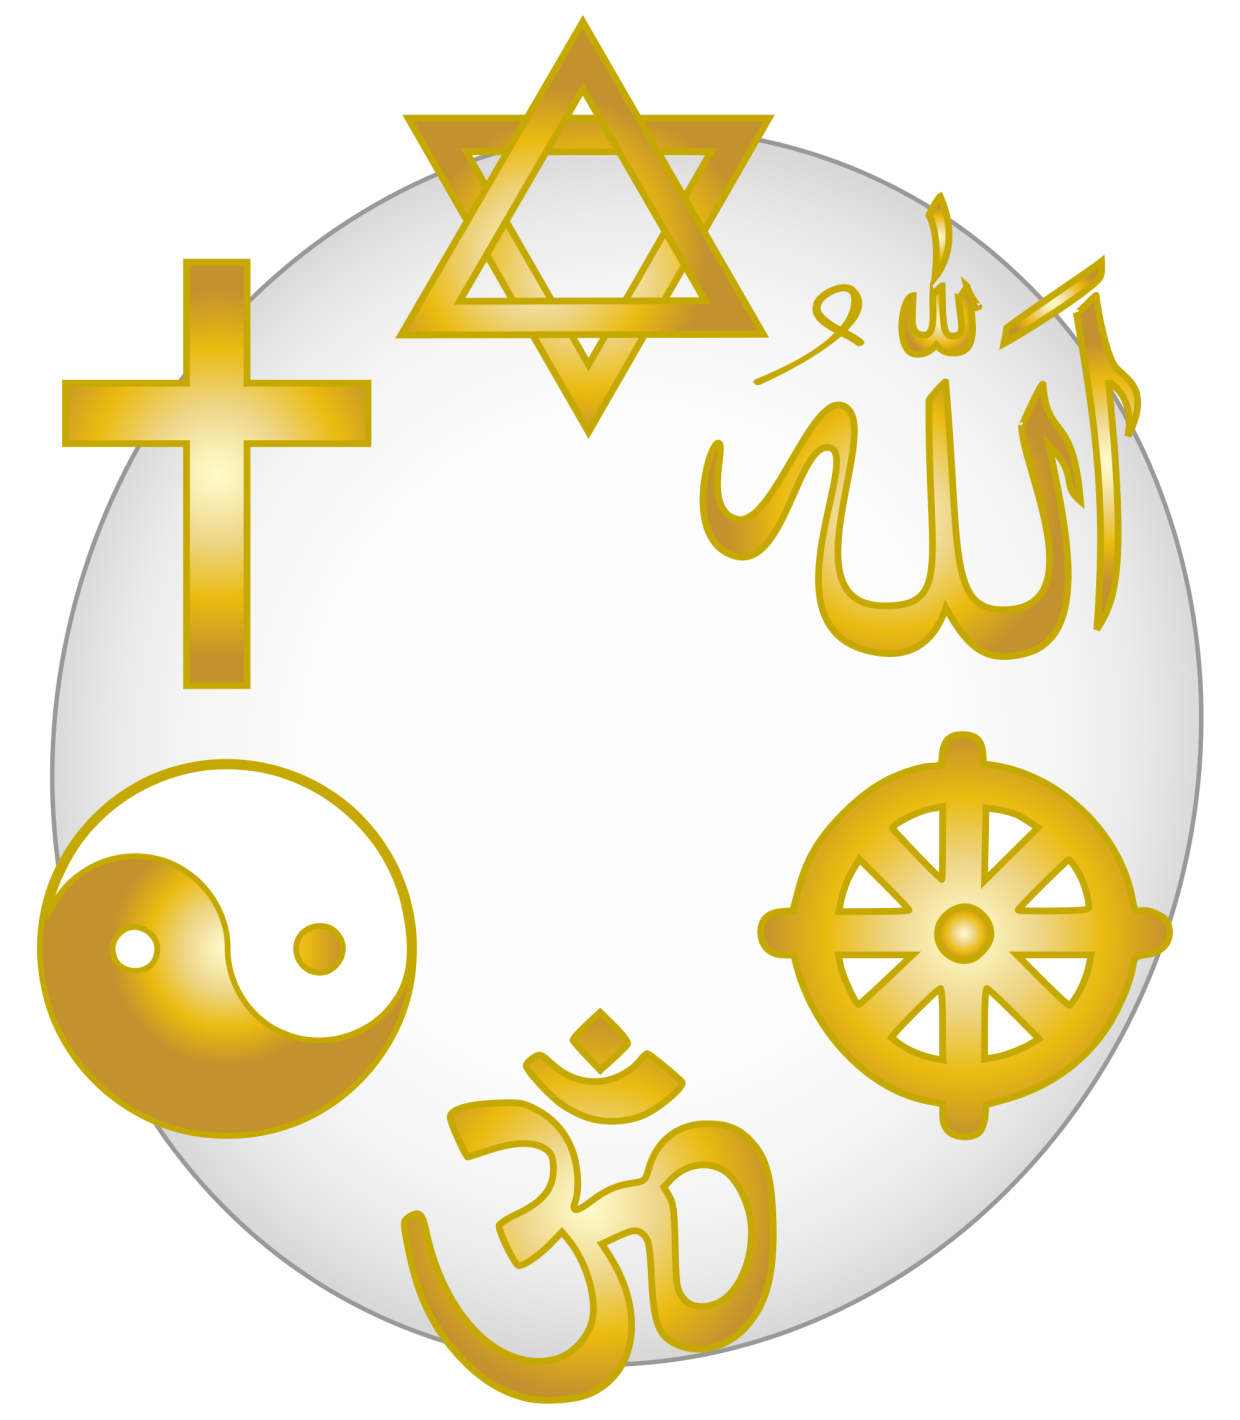 Rabbi clipart religious leader. Why religion is a